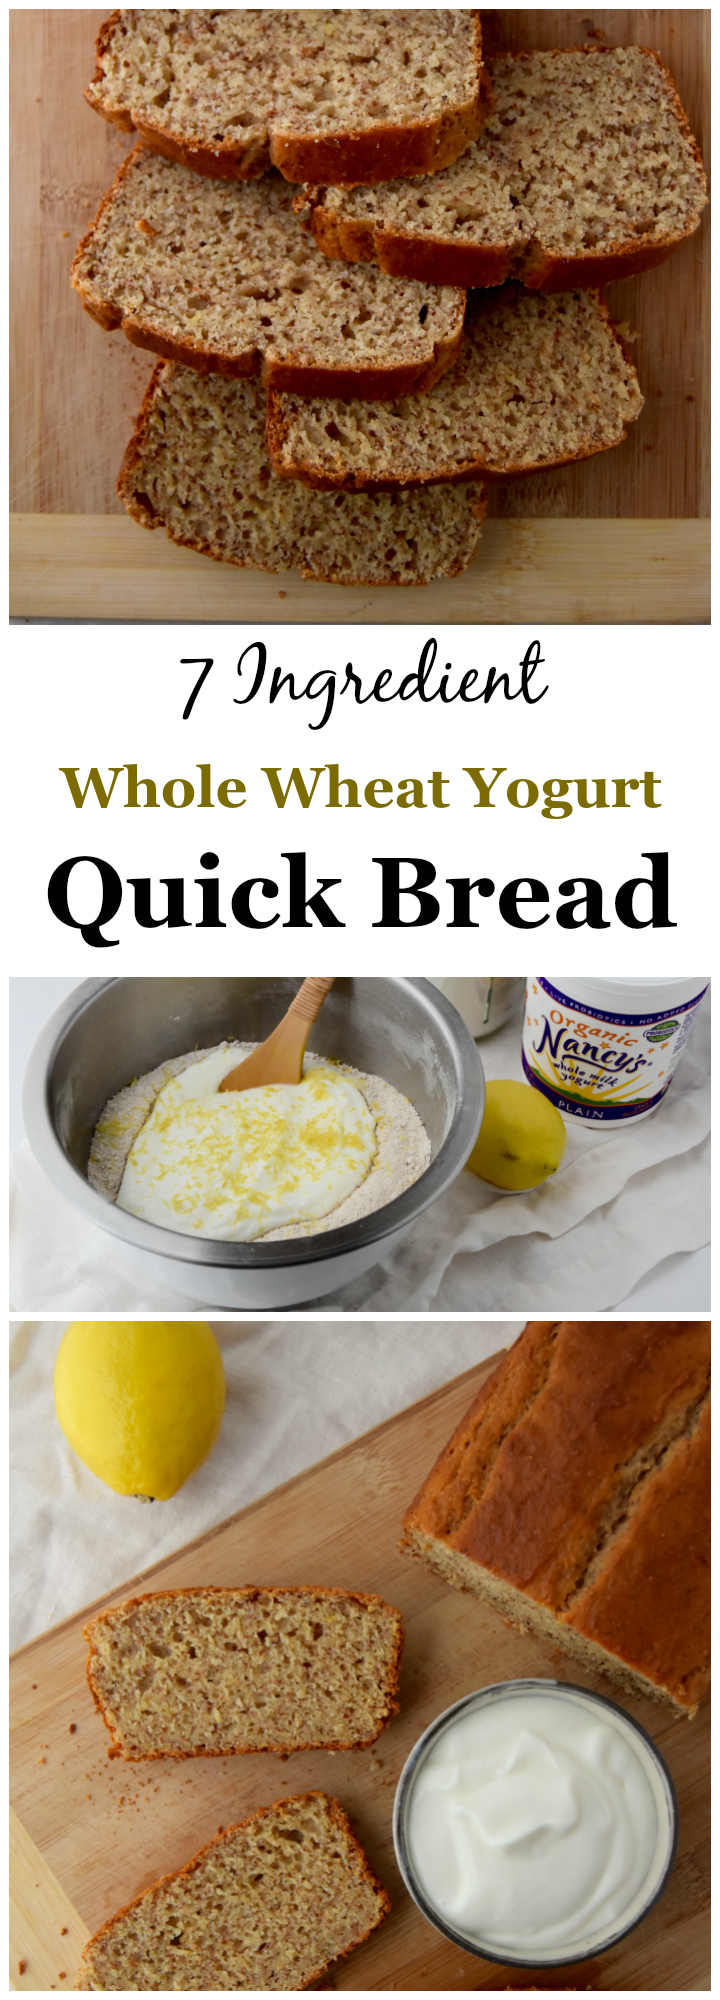 7 Ingredient Whole Wheat Yogurt Quick Bread - a one-bowl bread recipe you can throw together for the week. | uprootkitchen.com